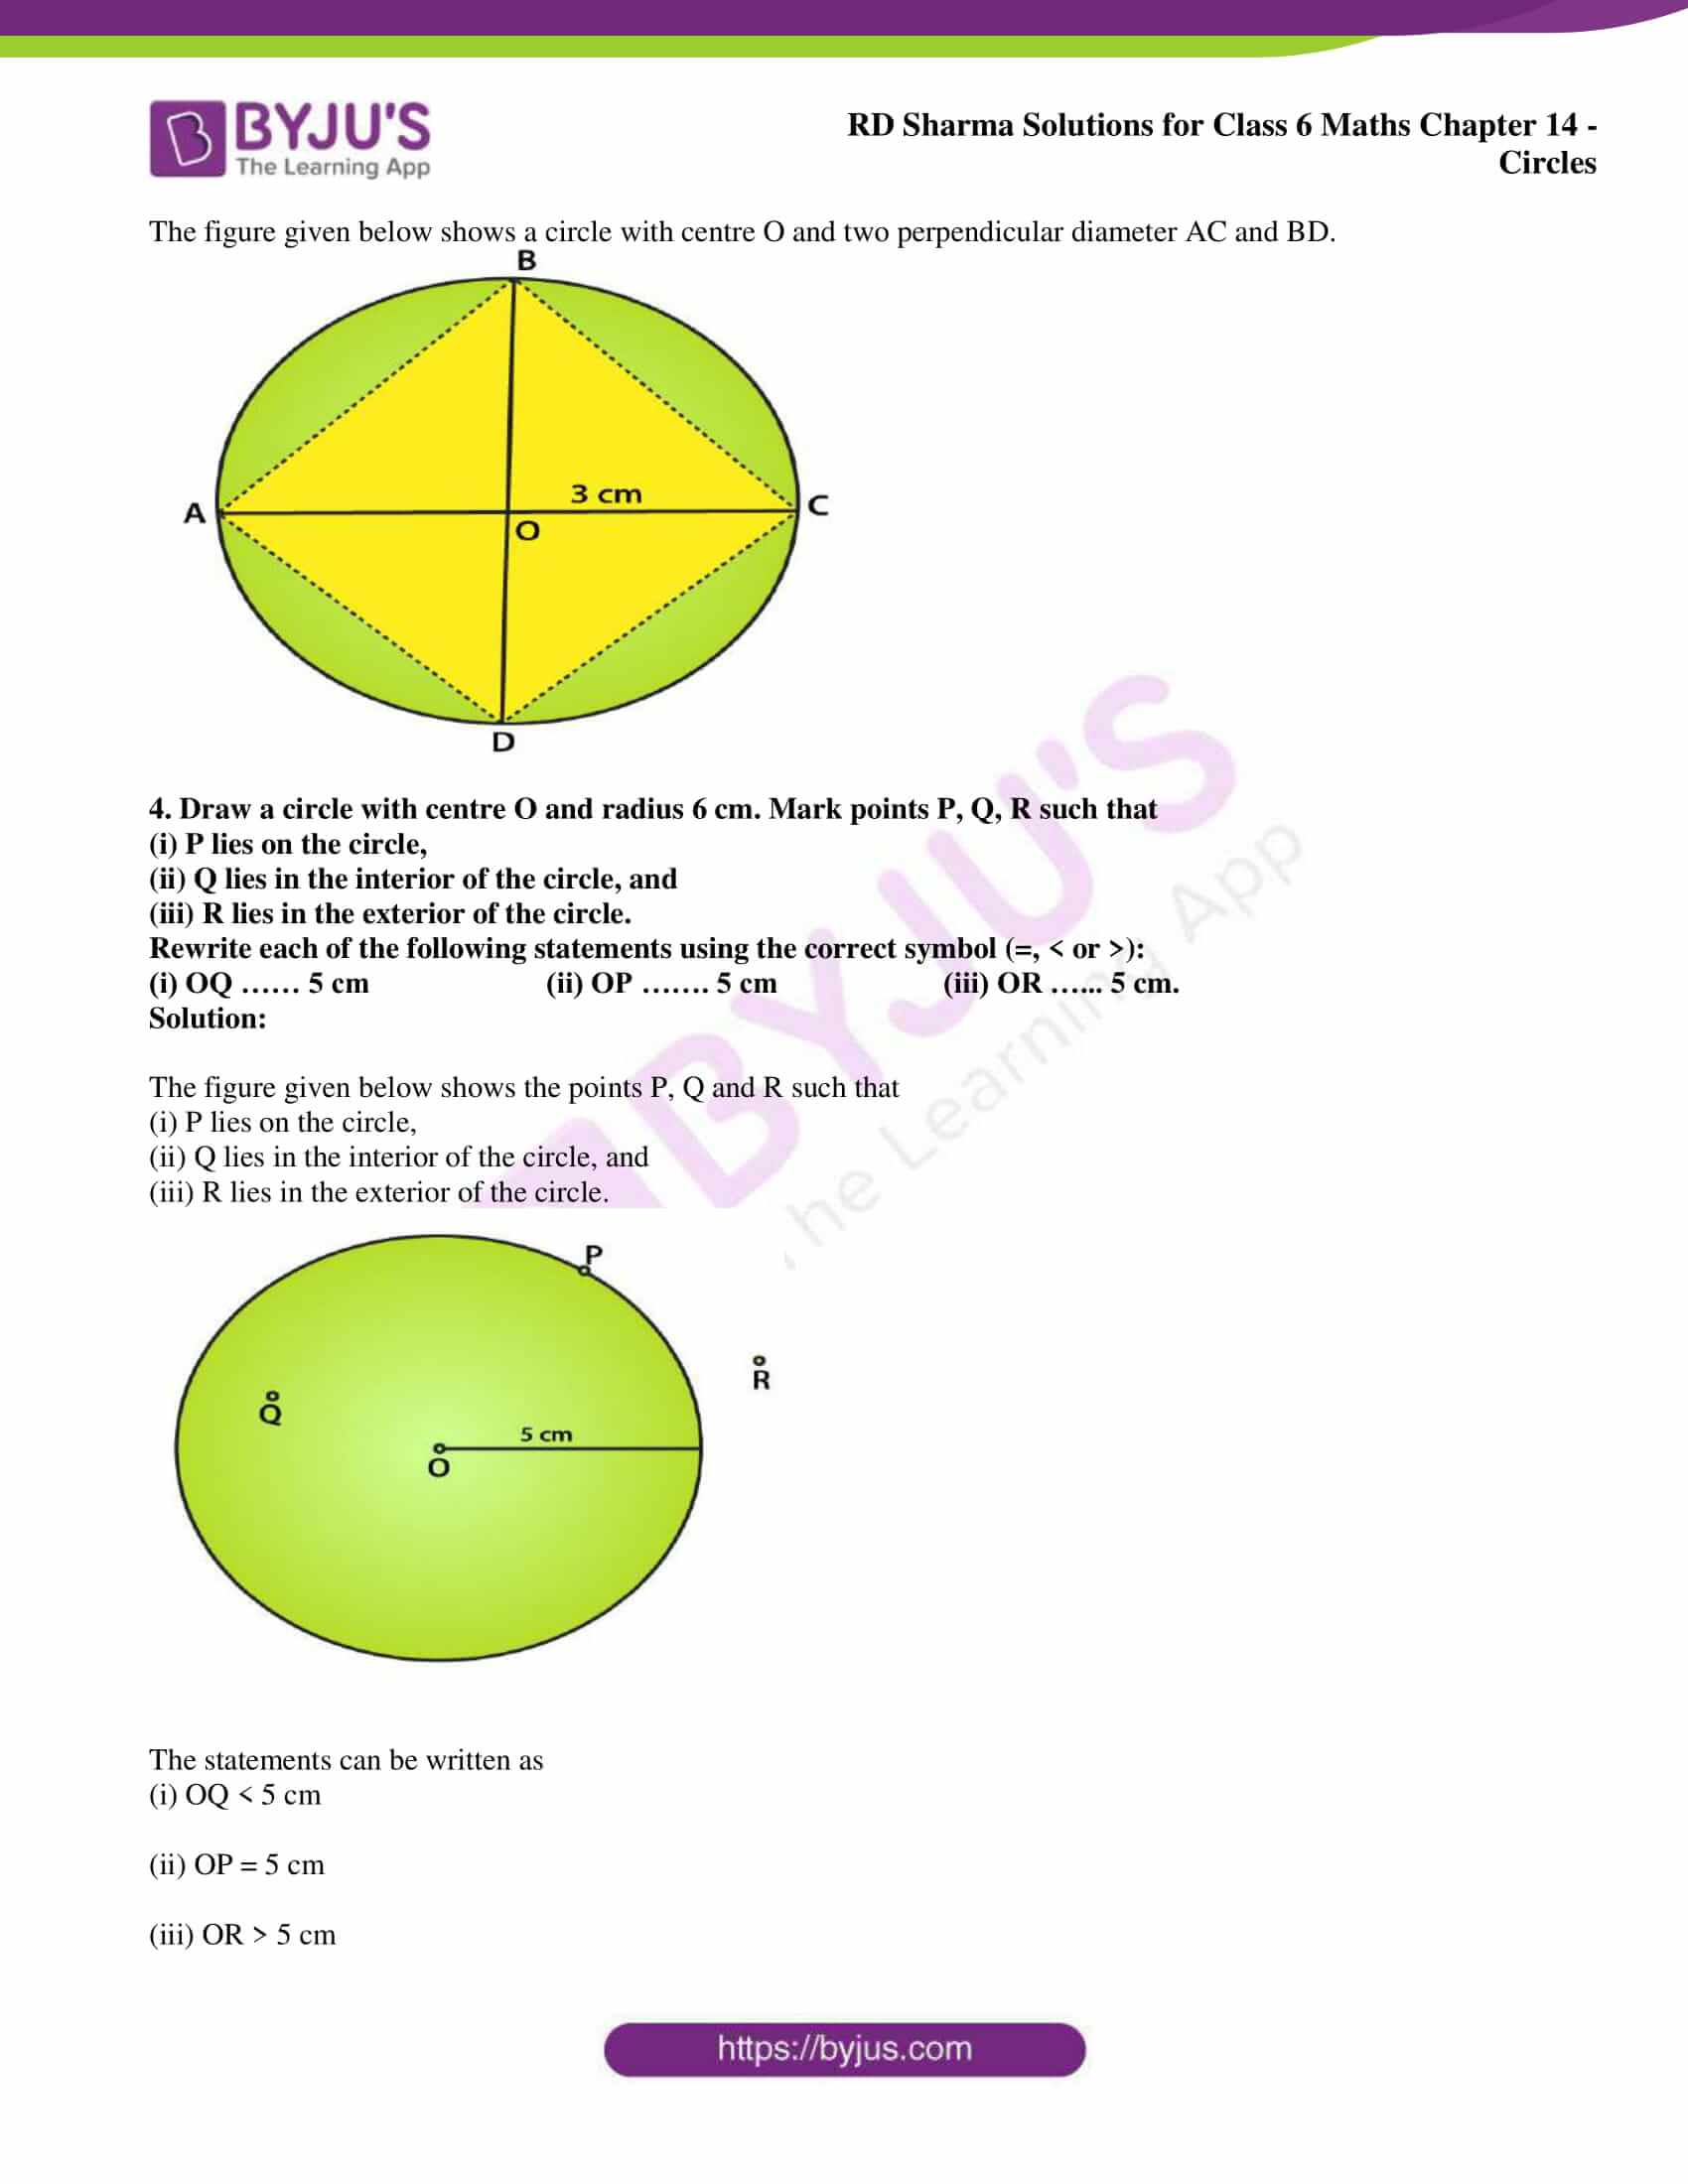 rd sharma solutions nov2020 class 6 maths chapter 14 exercise 1 2